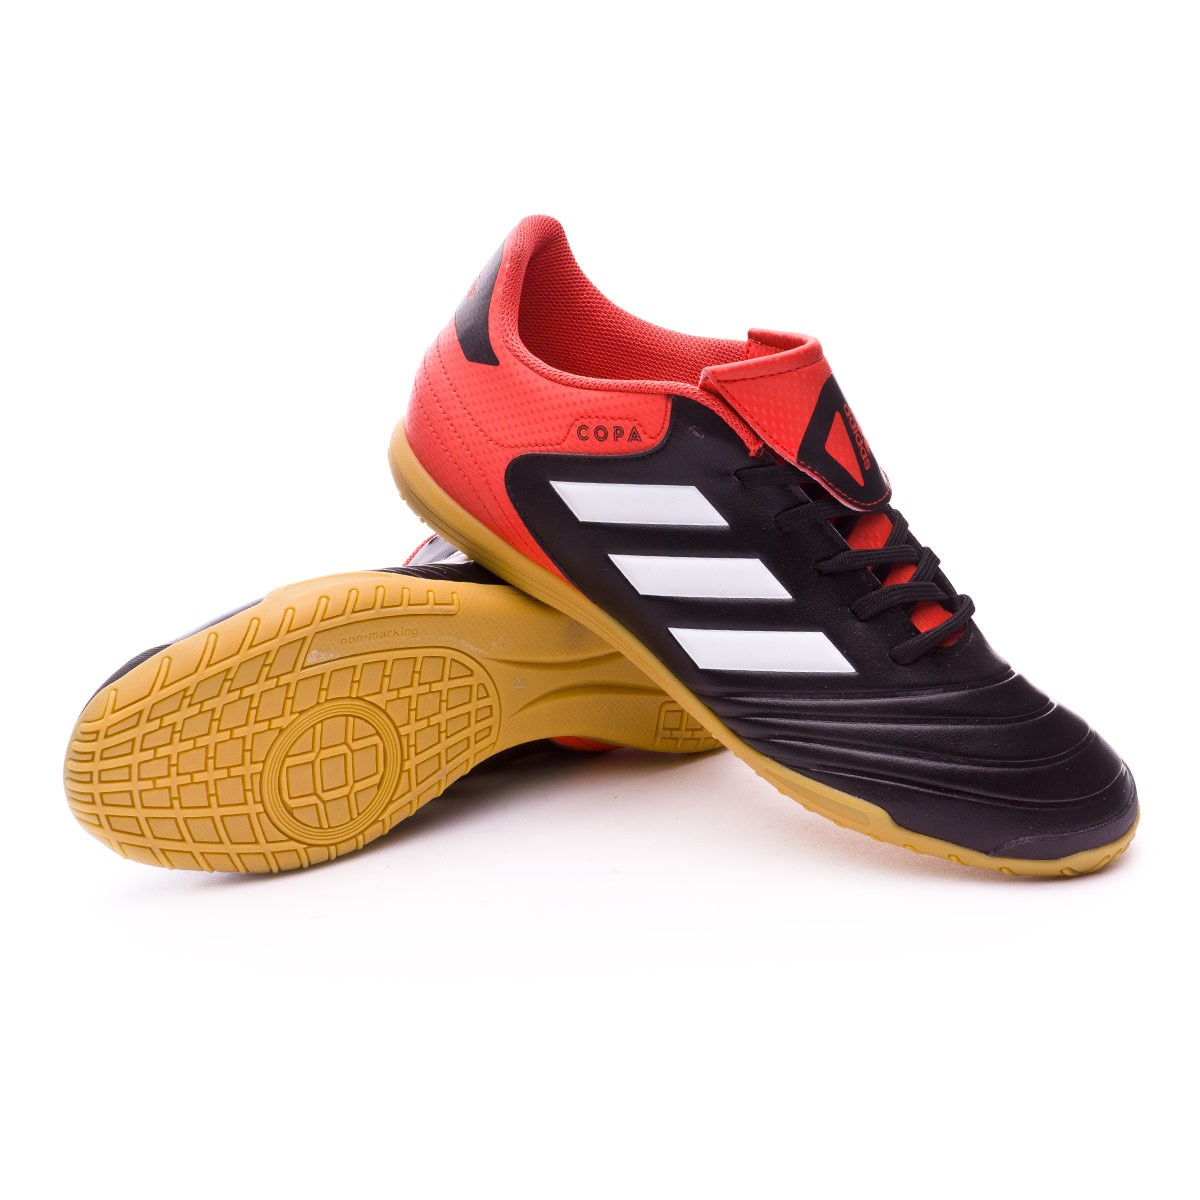 on sale 34428 c2fa2 adidas Copa Tango 18.4 IN Futsal Boot